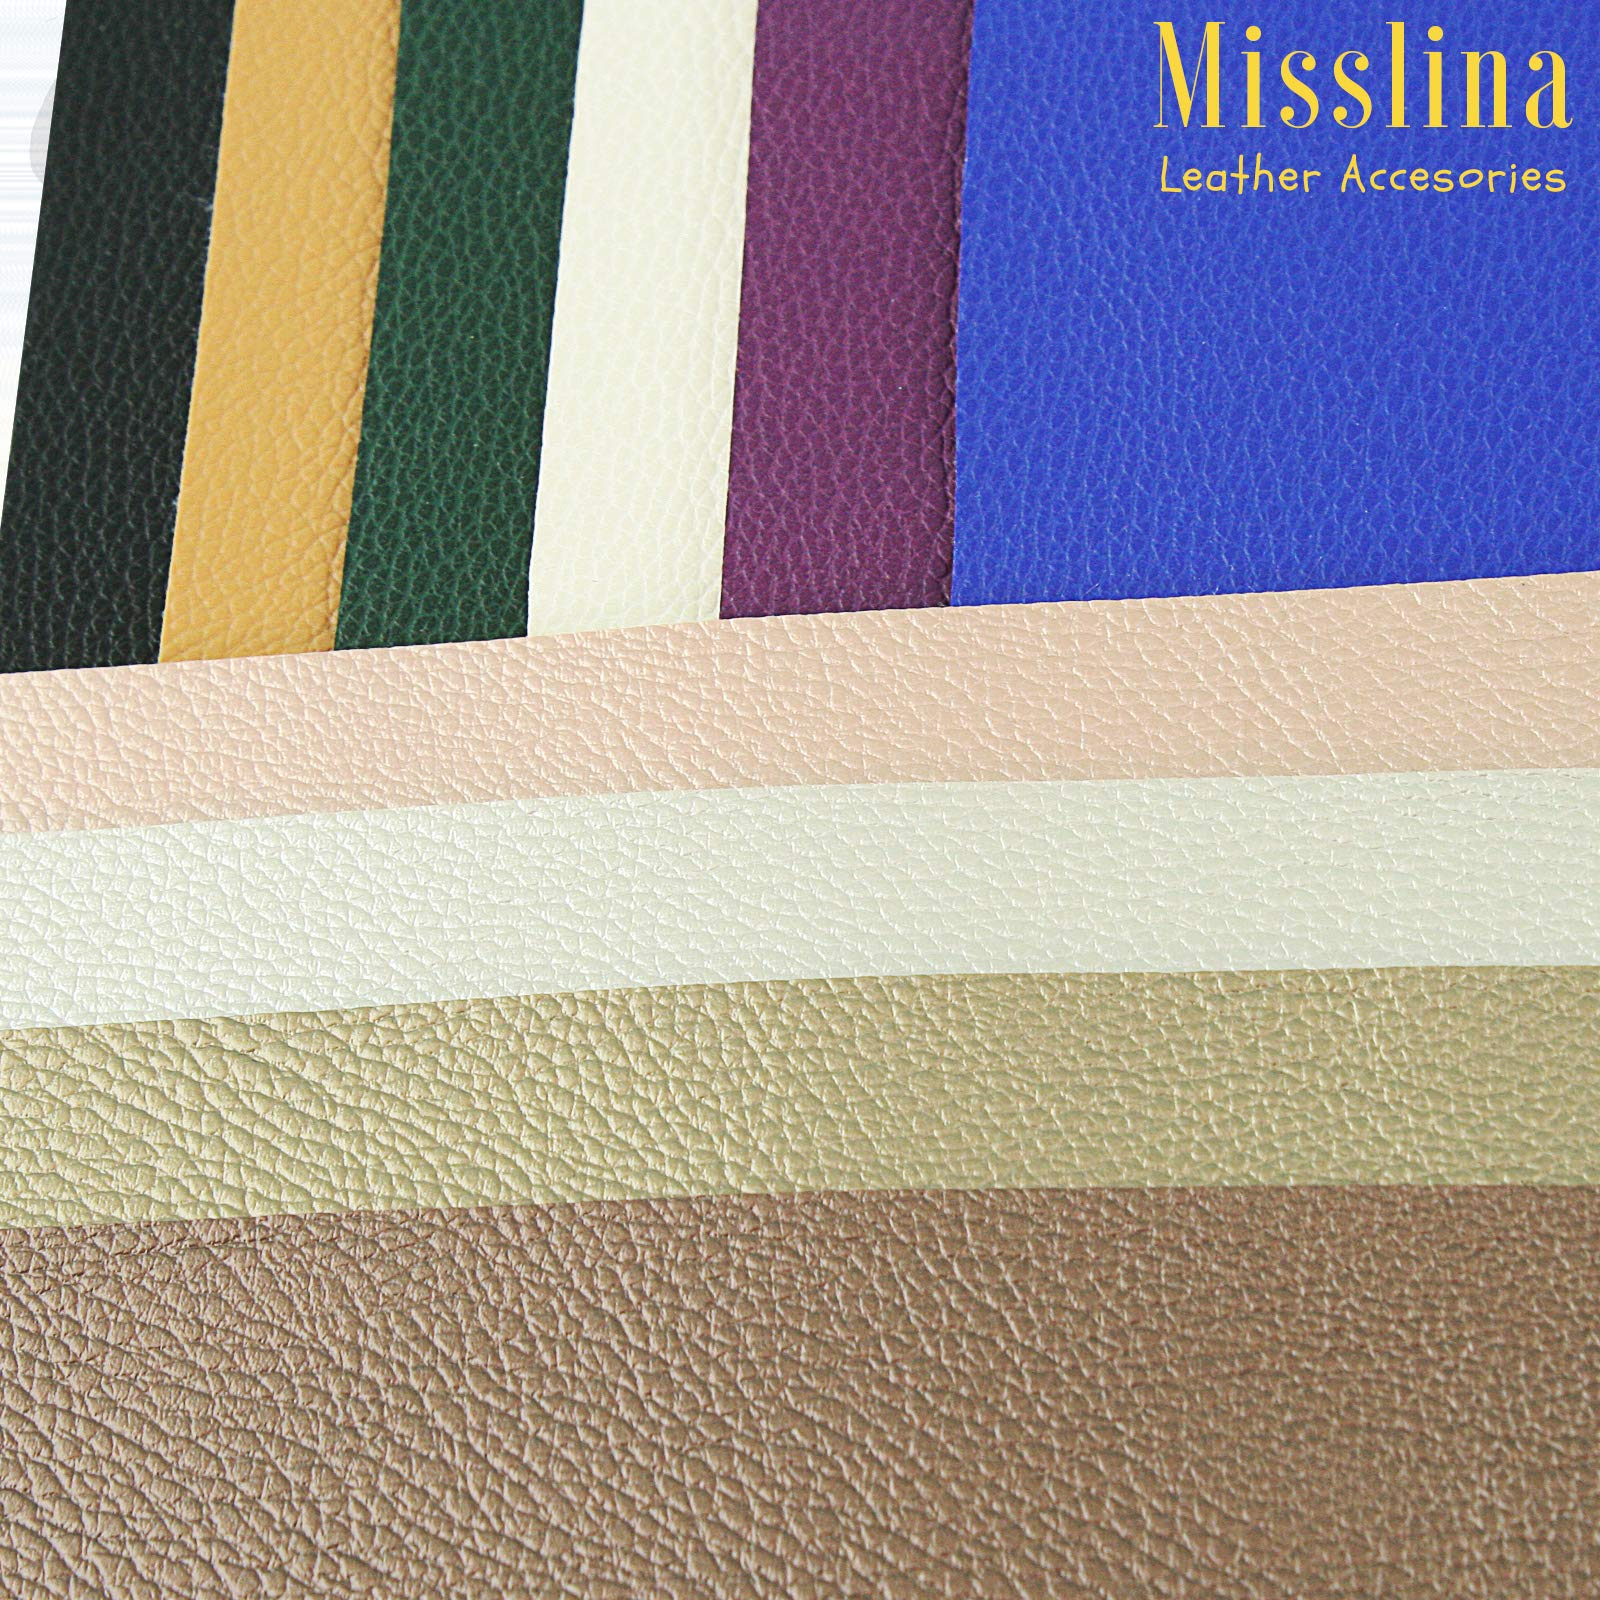 Faux Leather Sheets for Leathercraft Accesories with Cotton Fabric Back- 8'' x 13''(20 x 34 cm) Pack of 10 Faux Leather for Earring Making, Ribbon Bowls Crafts Making- 10 Colours of Faux Leather Sheets by MissLina Faux Leather Accesories (Image #7)